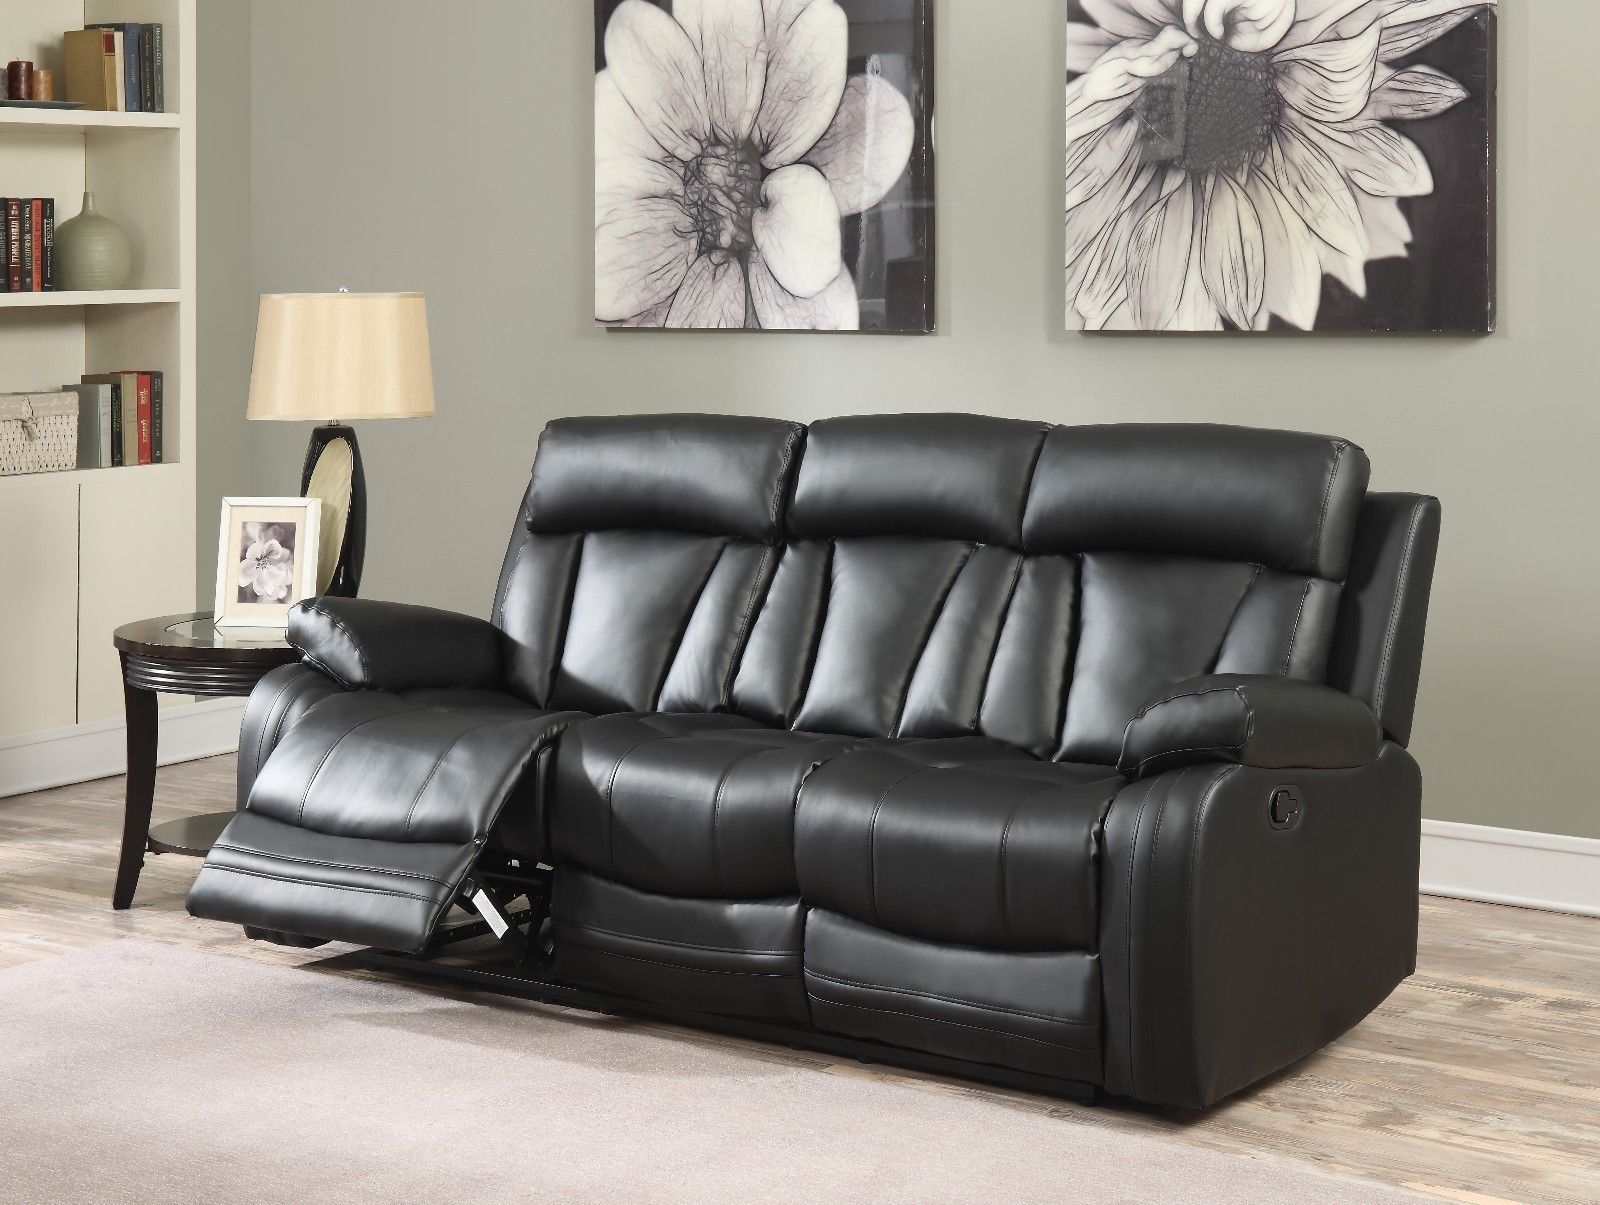 Meridian 645 Avery Living Room Sofa in Black Bonded Leather Contemporary Style